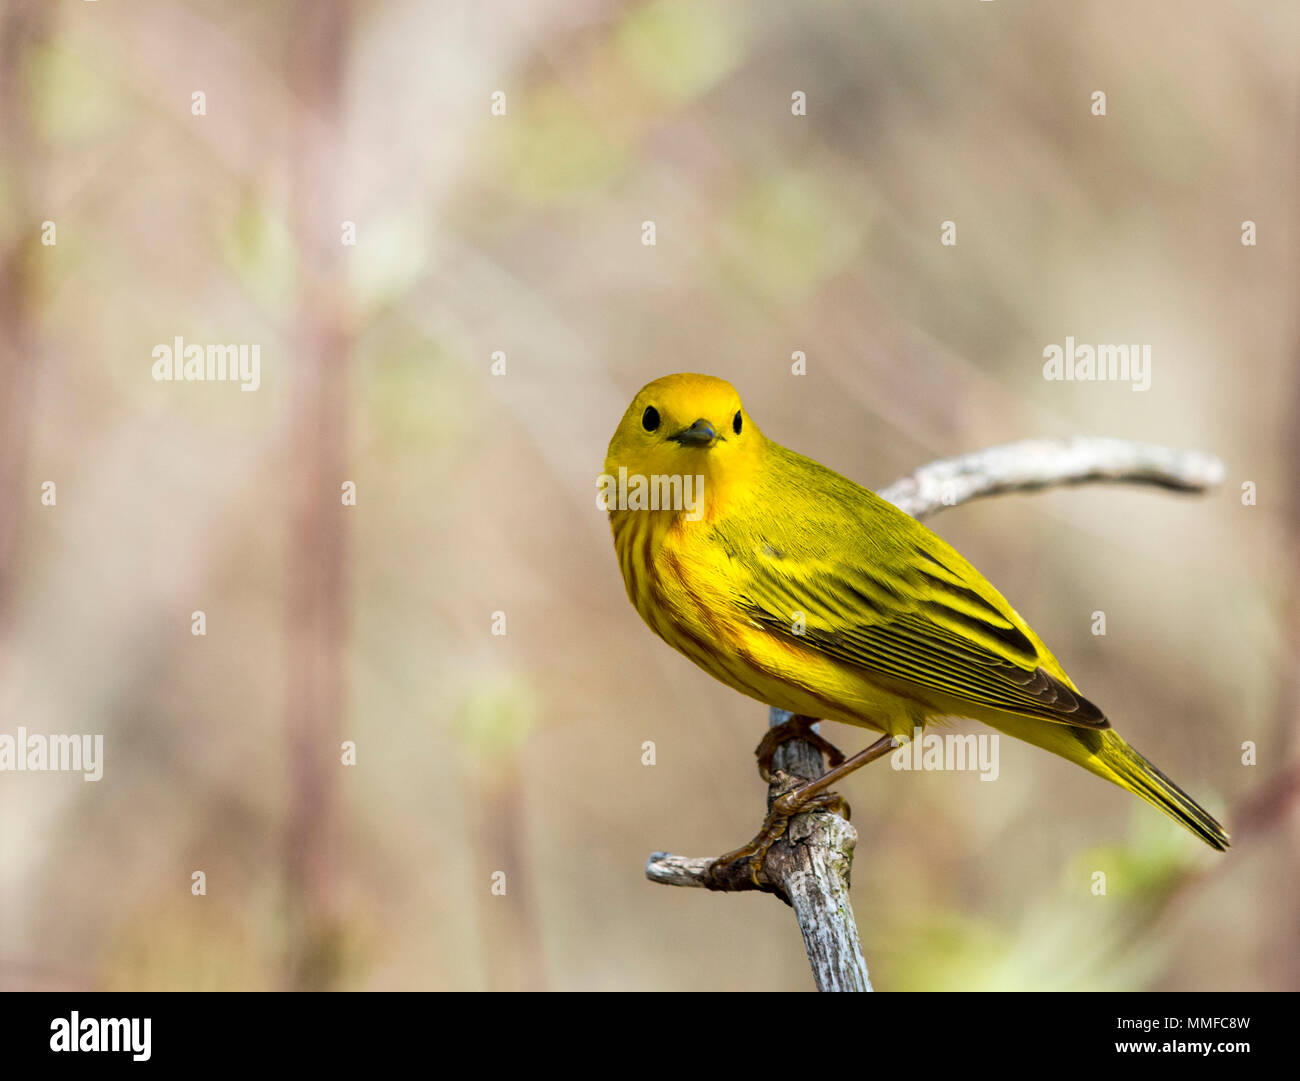 An American Yellow Warbler bird seen at Magee Marsh in Northwest Ohio during spring. - Stock Image